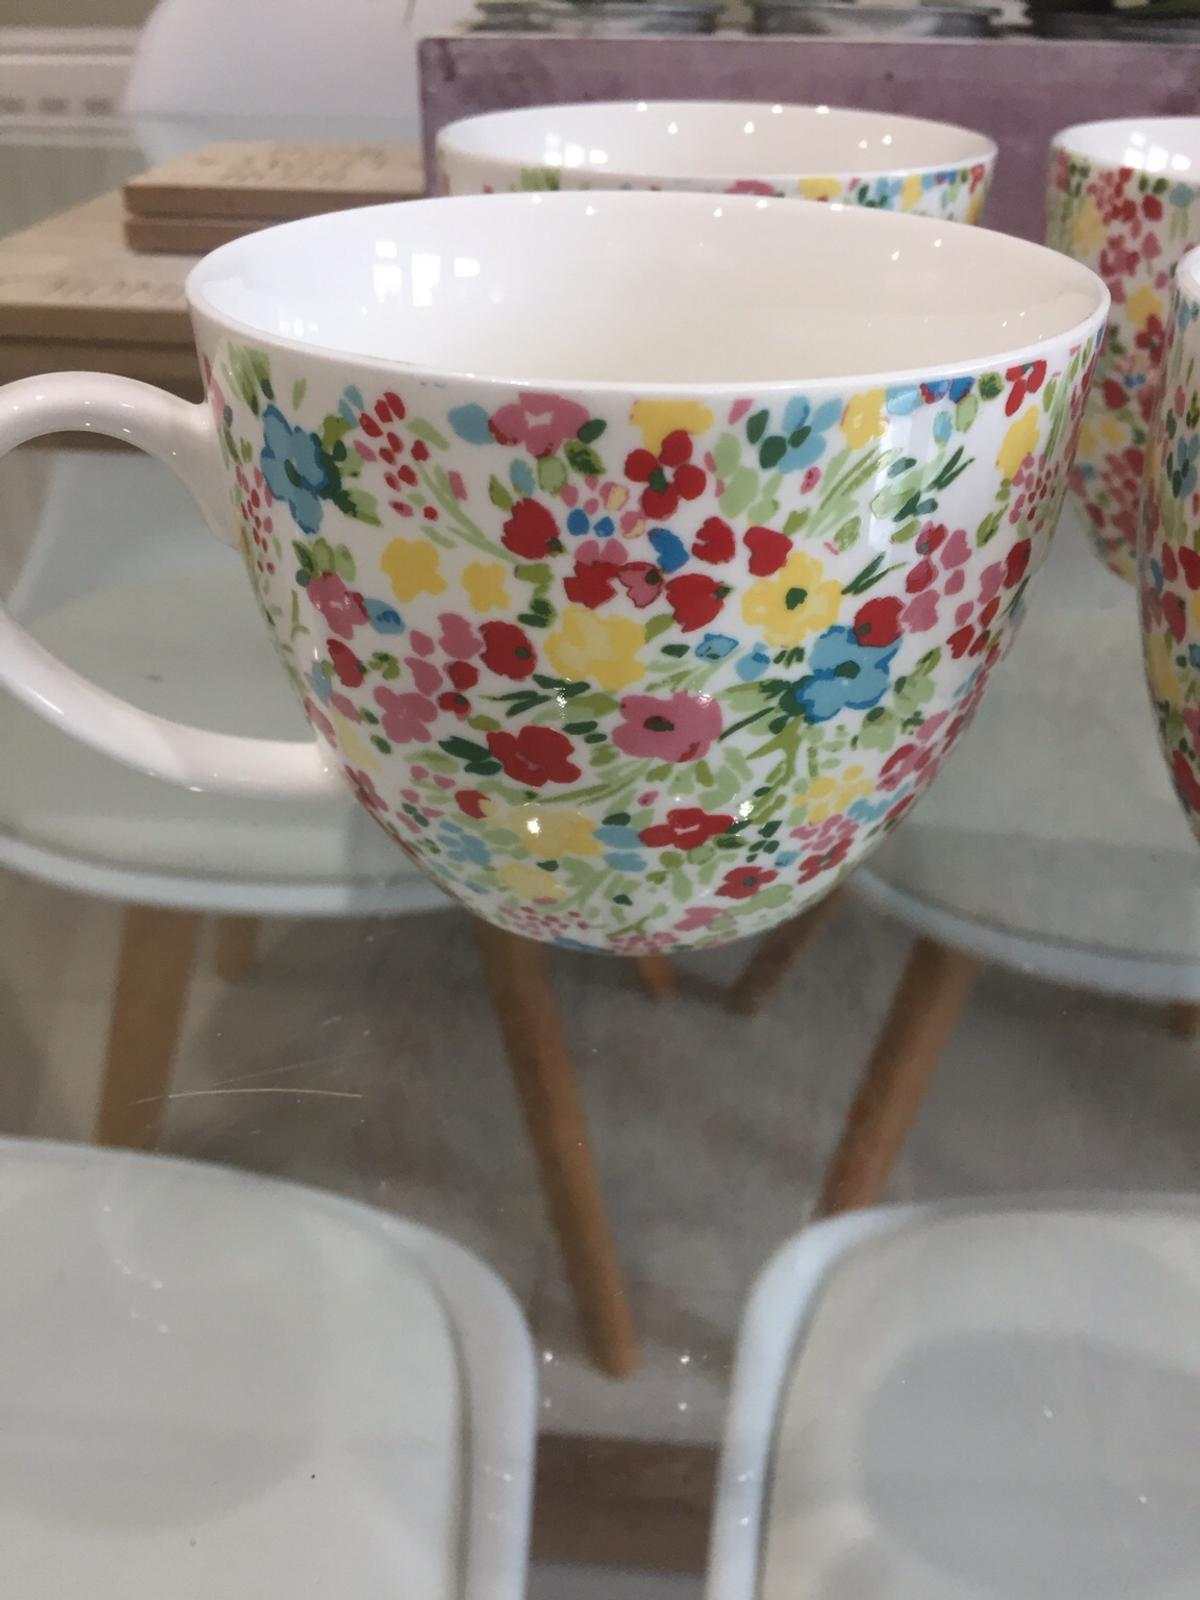 4 cups Excellent condition From a clean, smoke and pet free home. Pick up only please Please check out my other items